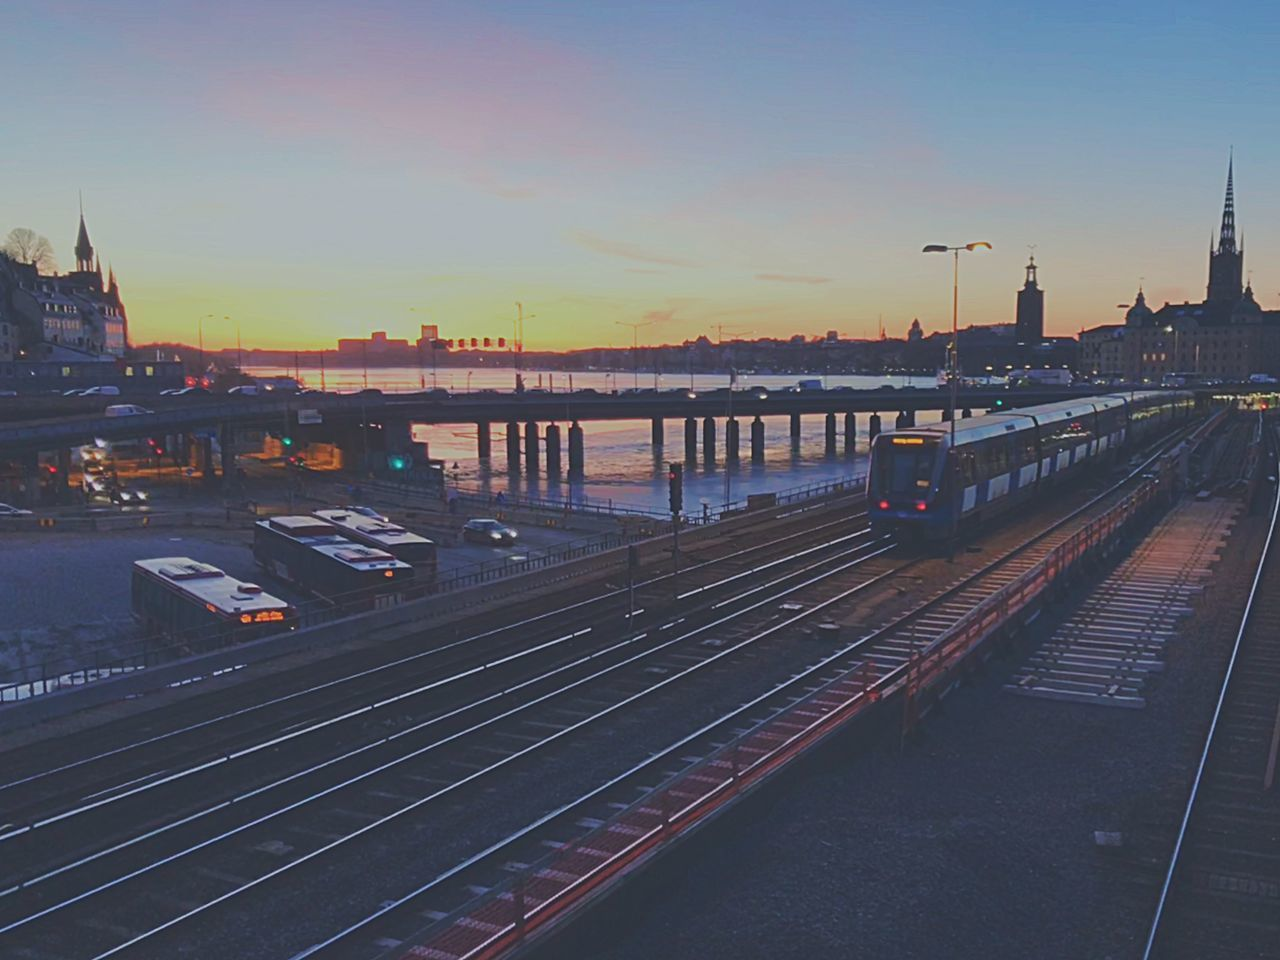 transportation, sky, track, architecture, rail transportation, mode of transportation, railroad track, built structure, sunset, water, nautical vessel, nature, building exterior, public transportation, high angle view, city, river, travel, no people, outdoors